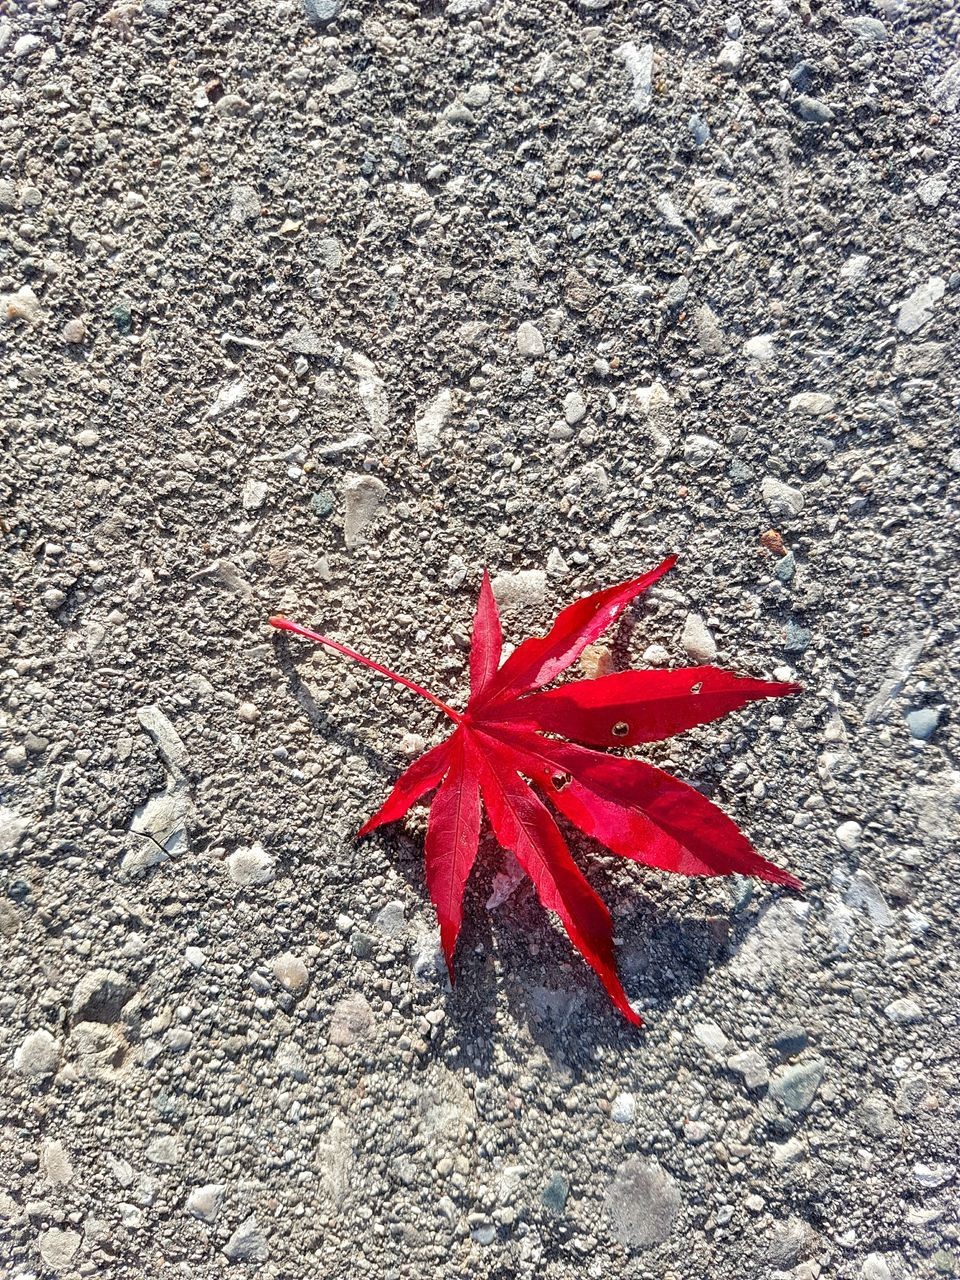 autumn, leaf, red, change, maple leaf, day, maple, high angle view, no people, outdoors, nature, close-up, beauty in nature